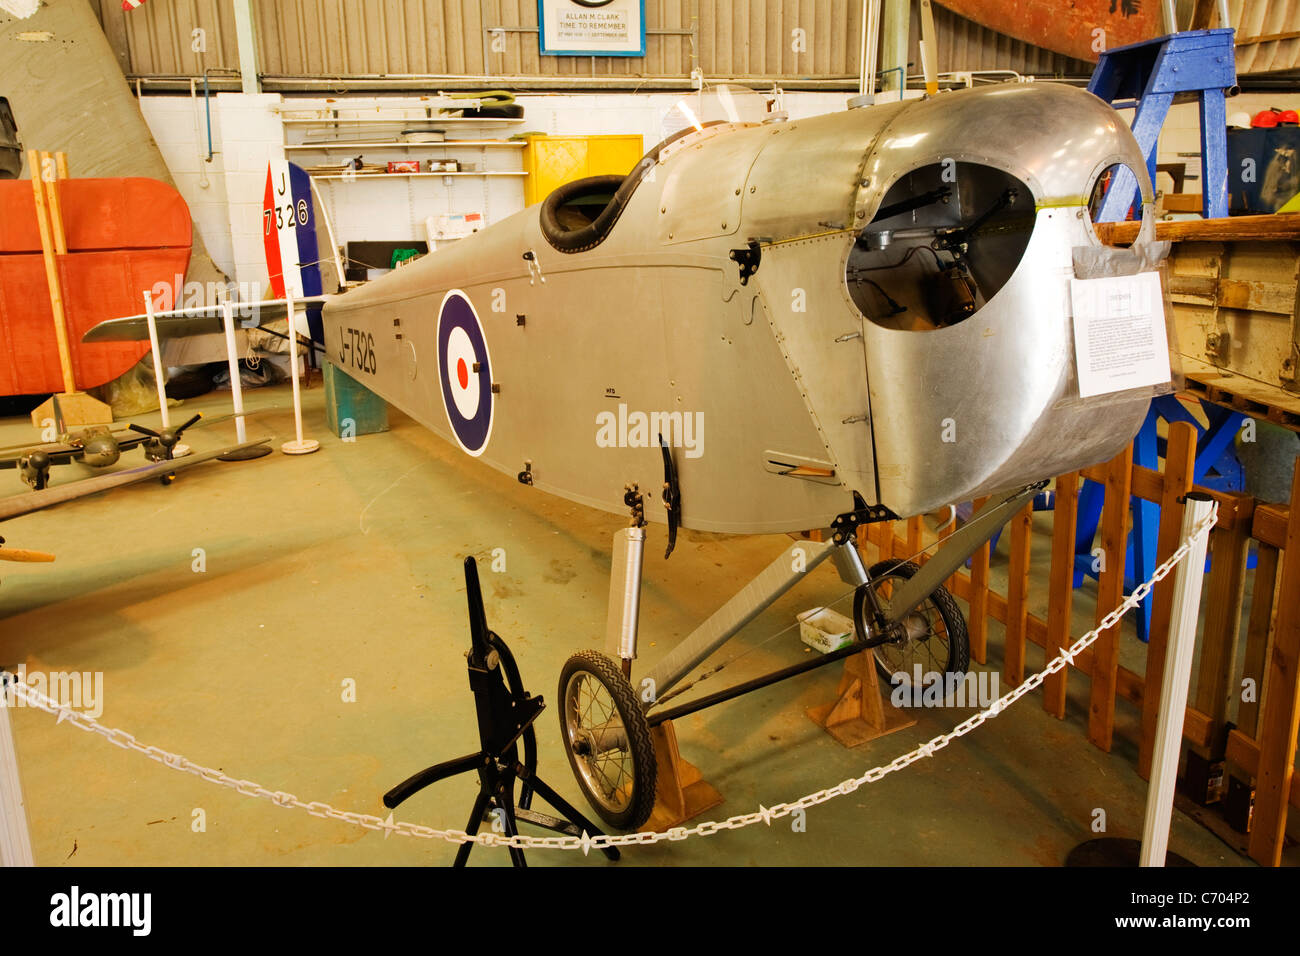 de Havilland Aircraft Heritage Centre Mosquito Museum DH53 Humming Bird first flown 1923/24 powered by 750 cc motor - Stock Image